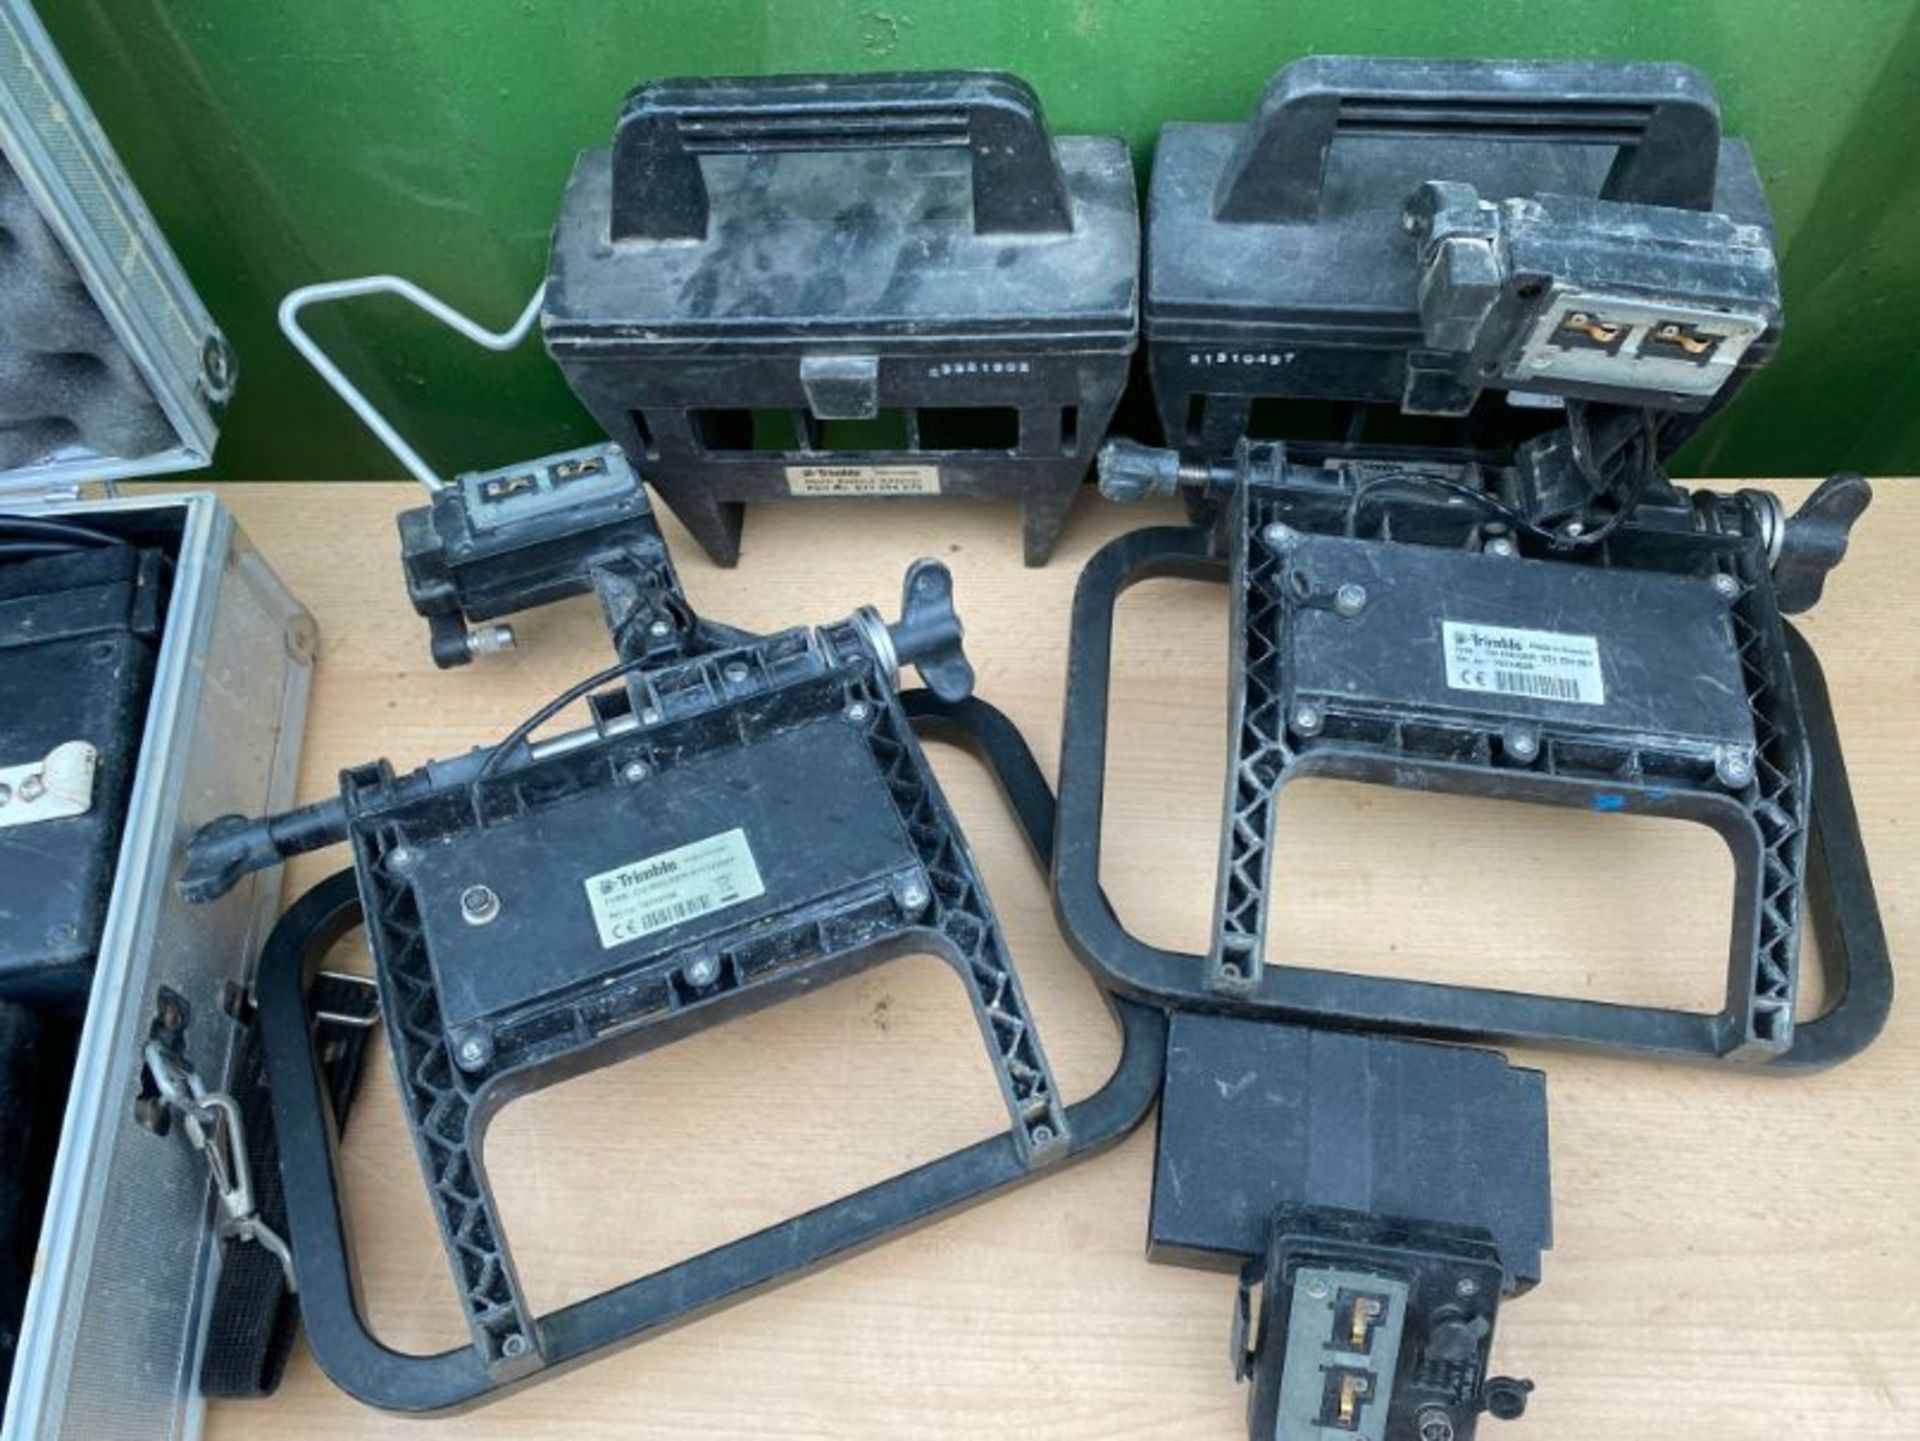 Lot 103 - Range of Trimble accessories including muti battery adapter x 2, CU holder x 2, charger and